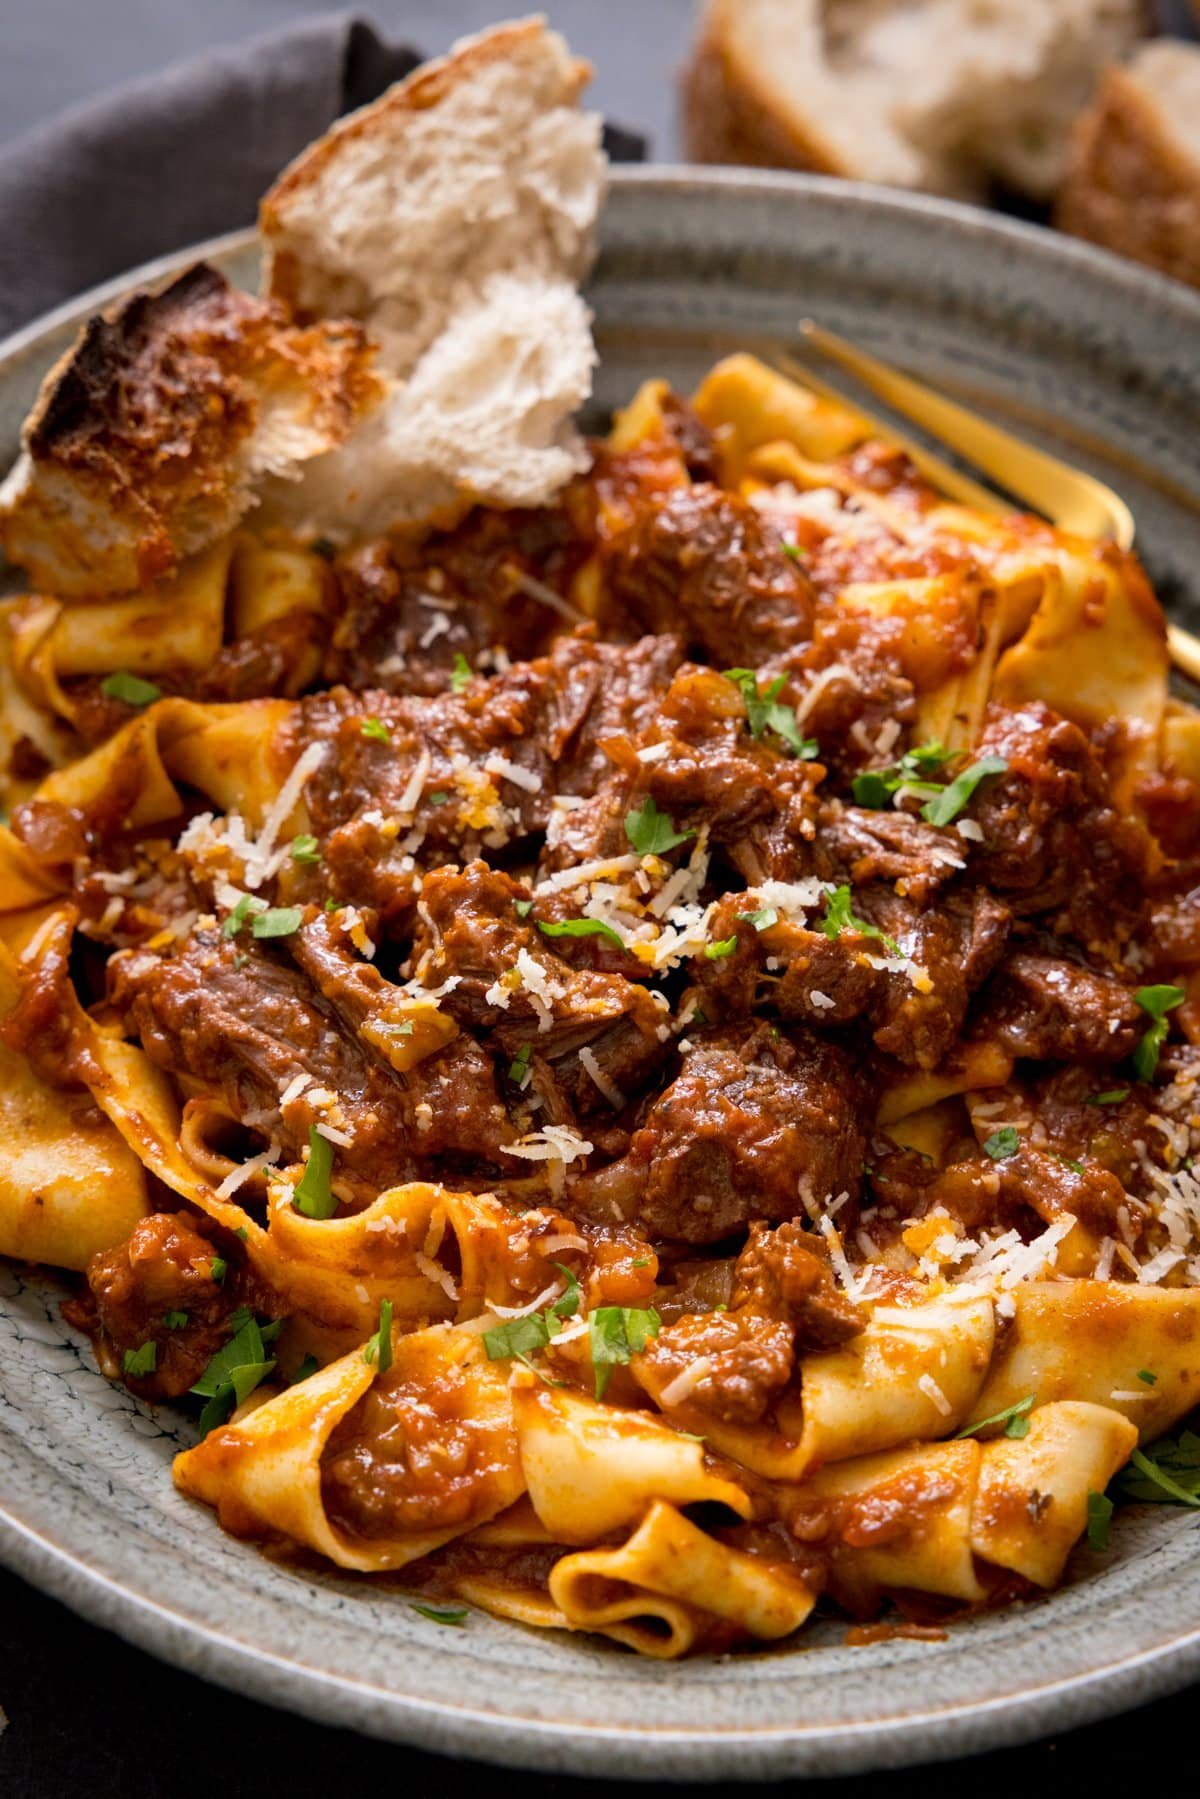 Beef ragu with pappardelle in a bowl with a chunk of bread.